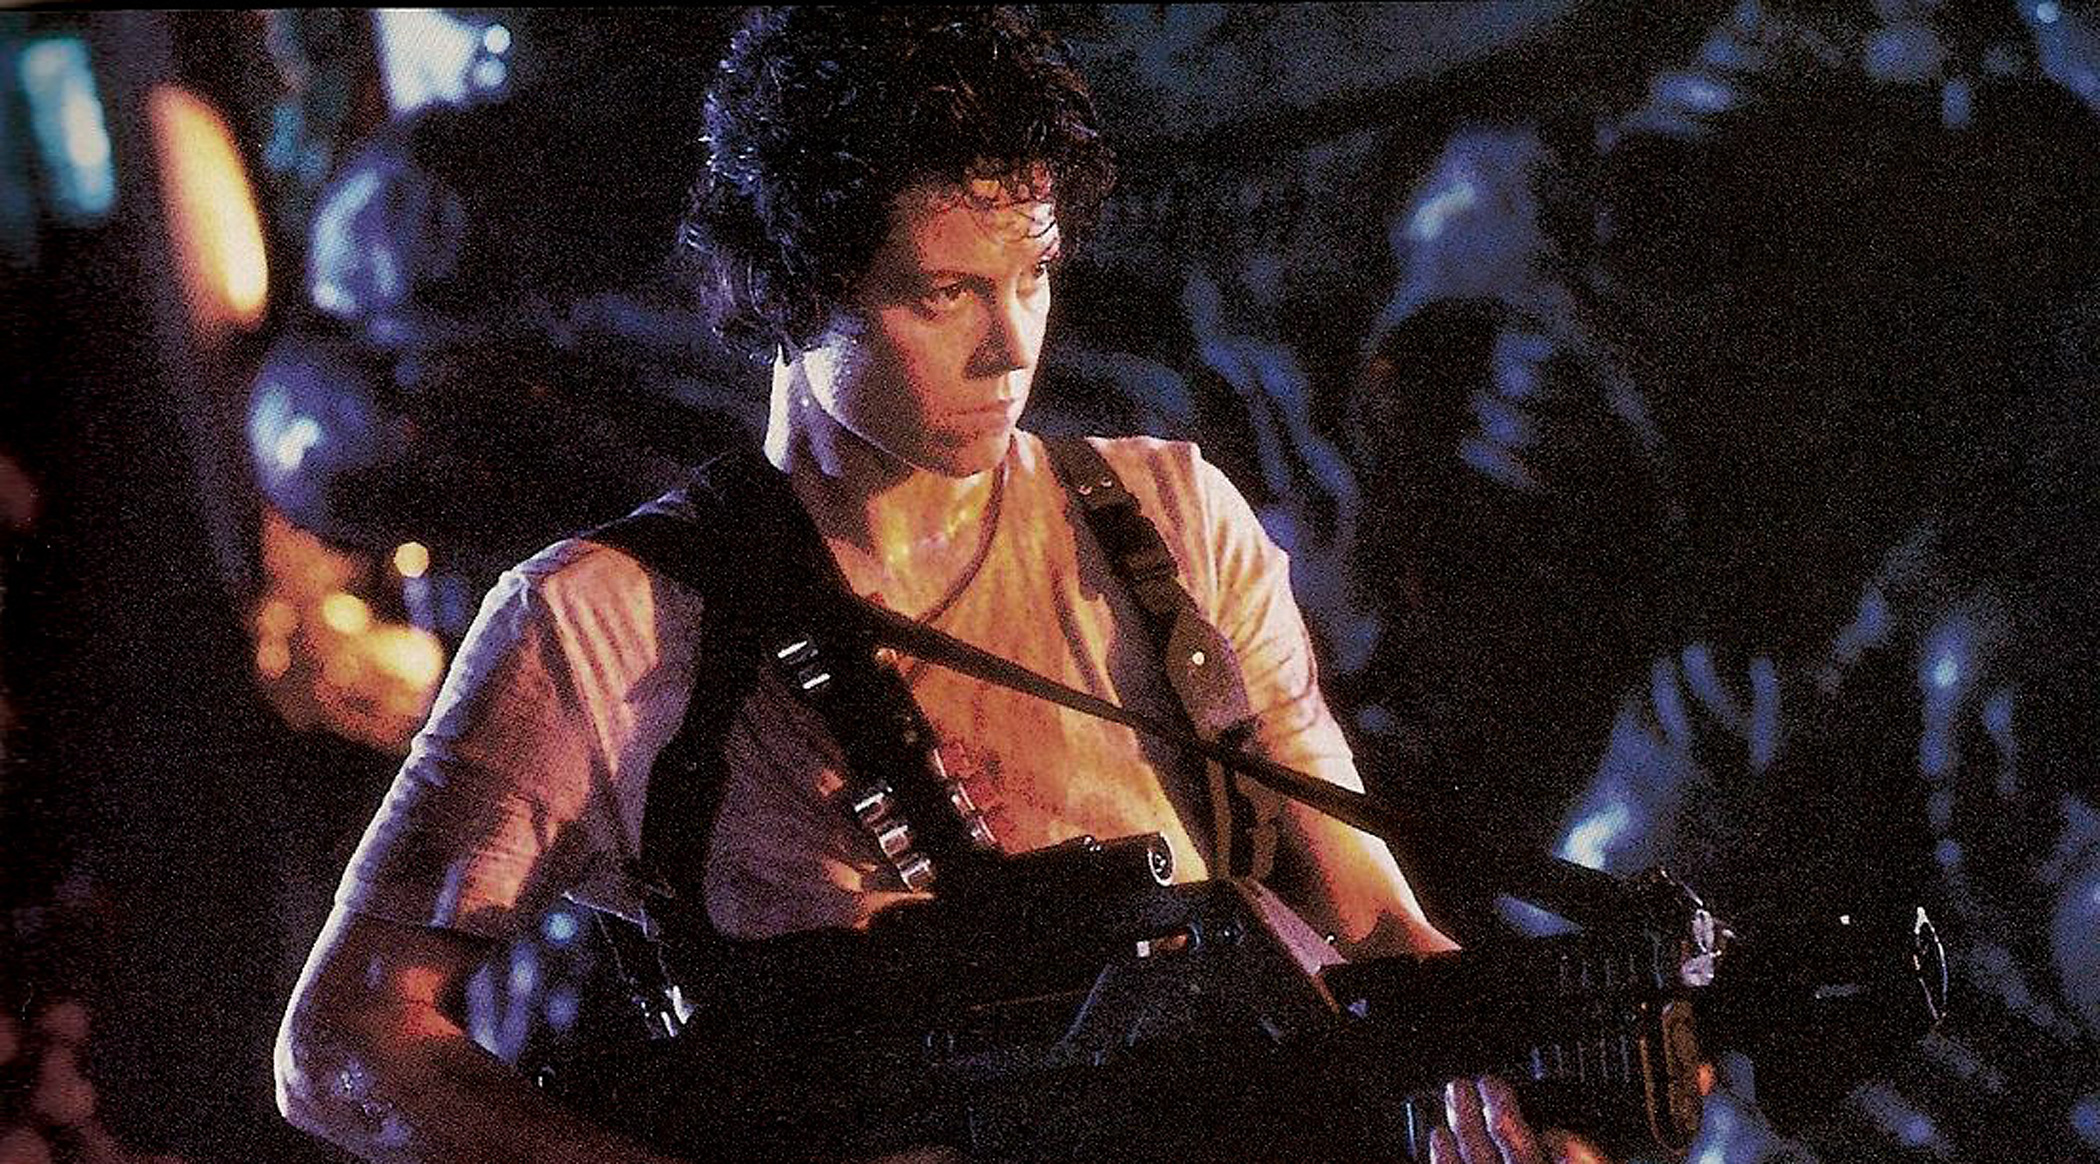 The tough-as-nails Ripley was a breakout role for Weaver, who recently revisited the character for a new Alien video game.